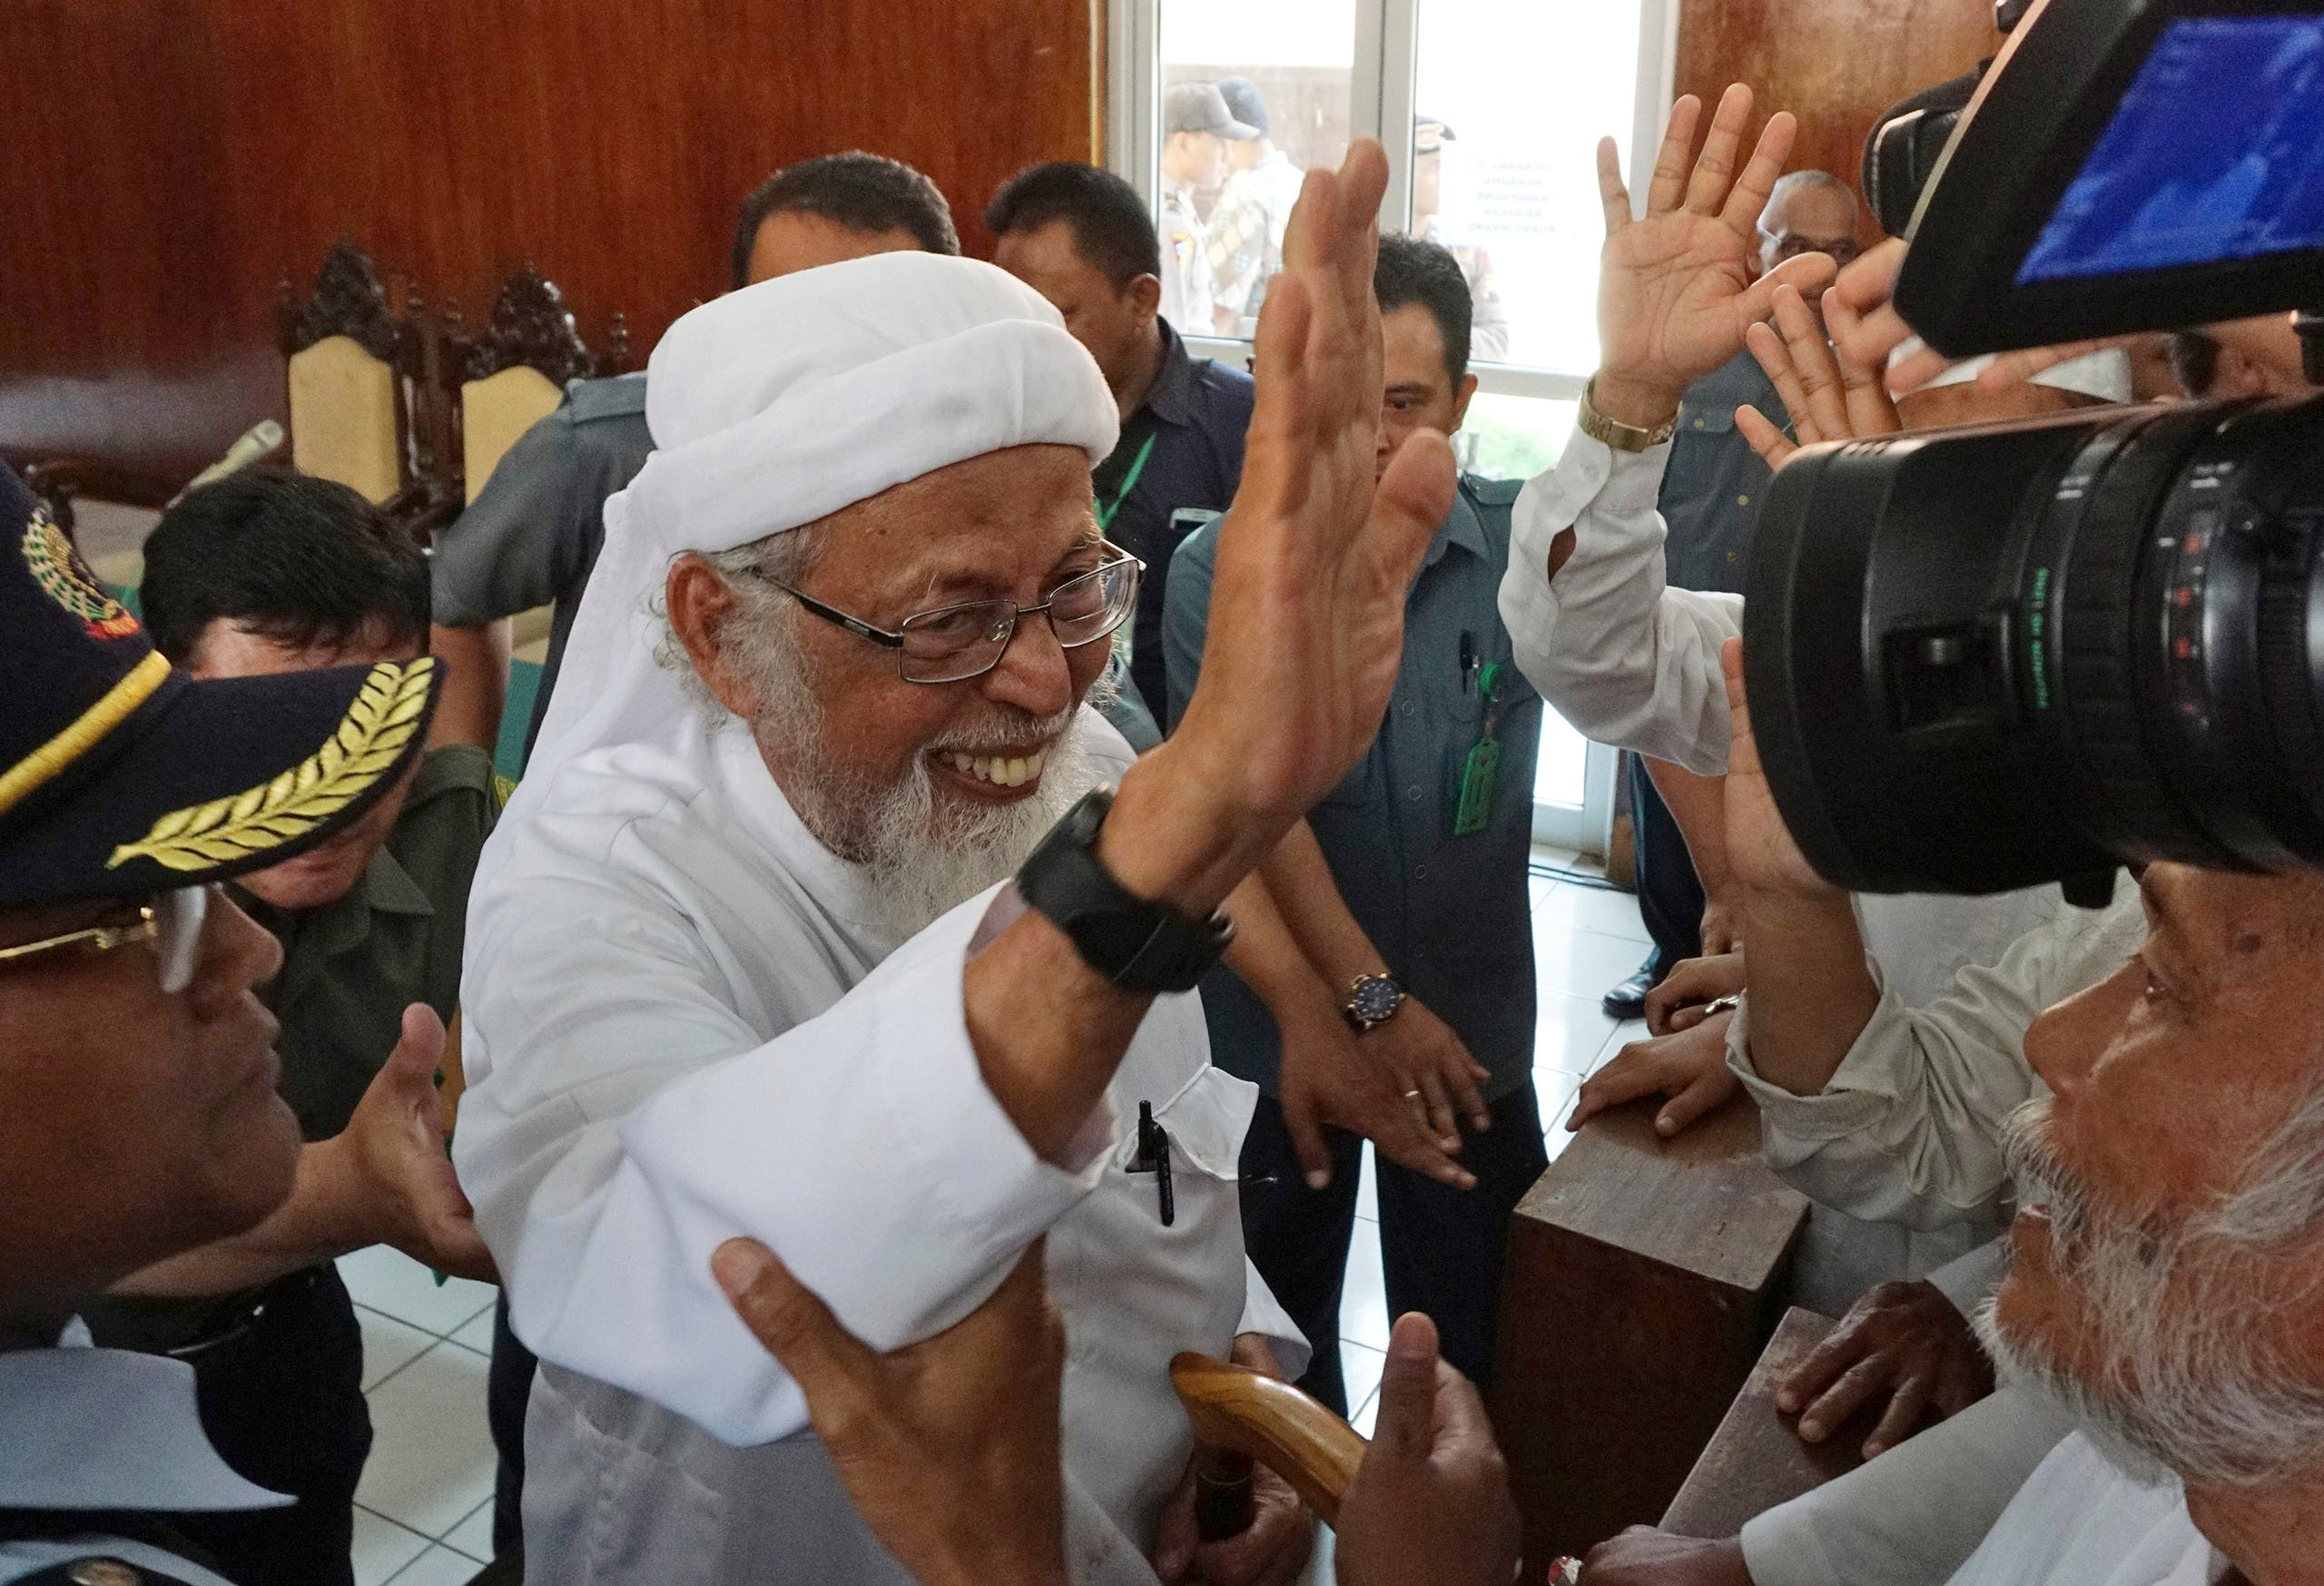 Radical Islamic cleric Abu Bakar Bashir, center, waves at his supporters after his appeal hearing at the local district court in Cilacap, Central Java, Indonesia, on January 12, 2016. (AP )